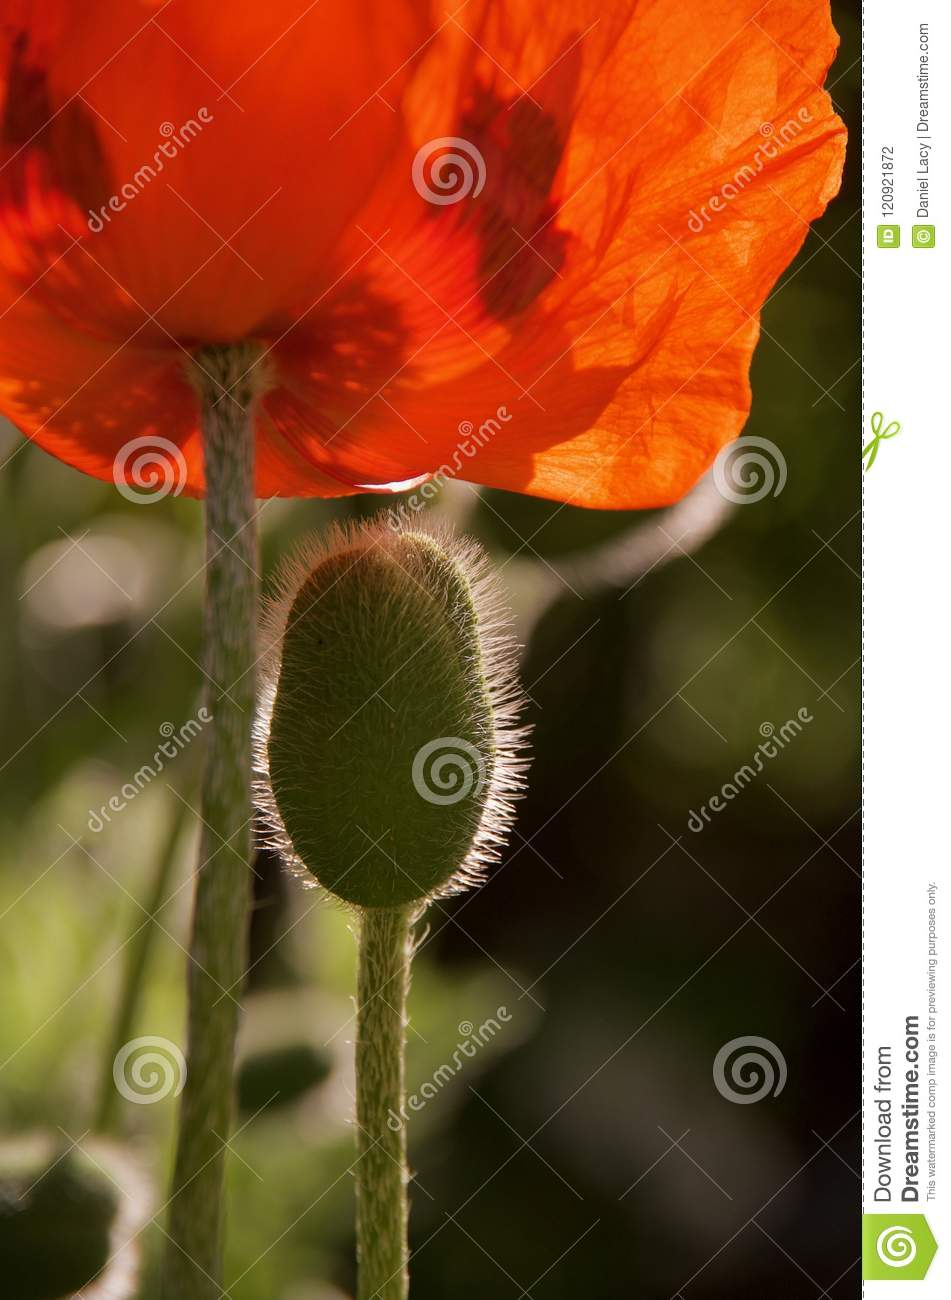 Vertical shot of a hairy bud and crimson flower of an oriental poppy.